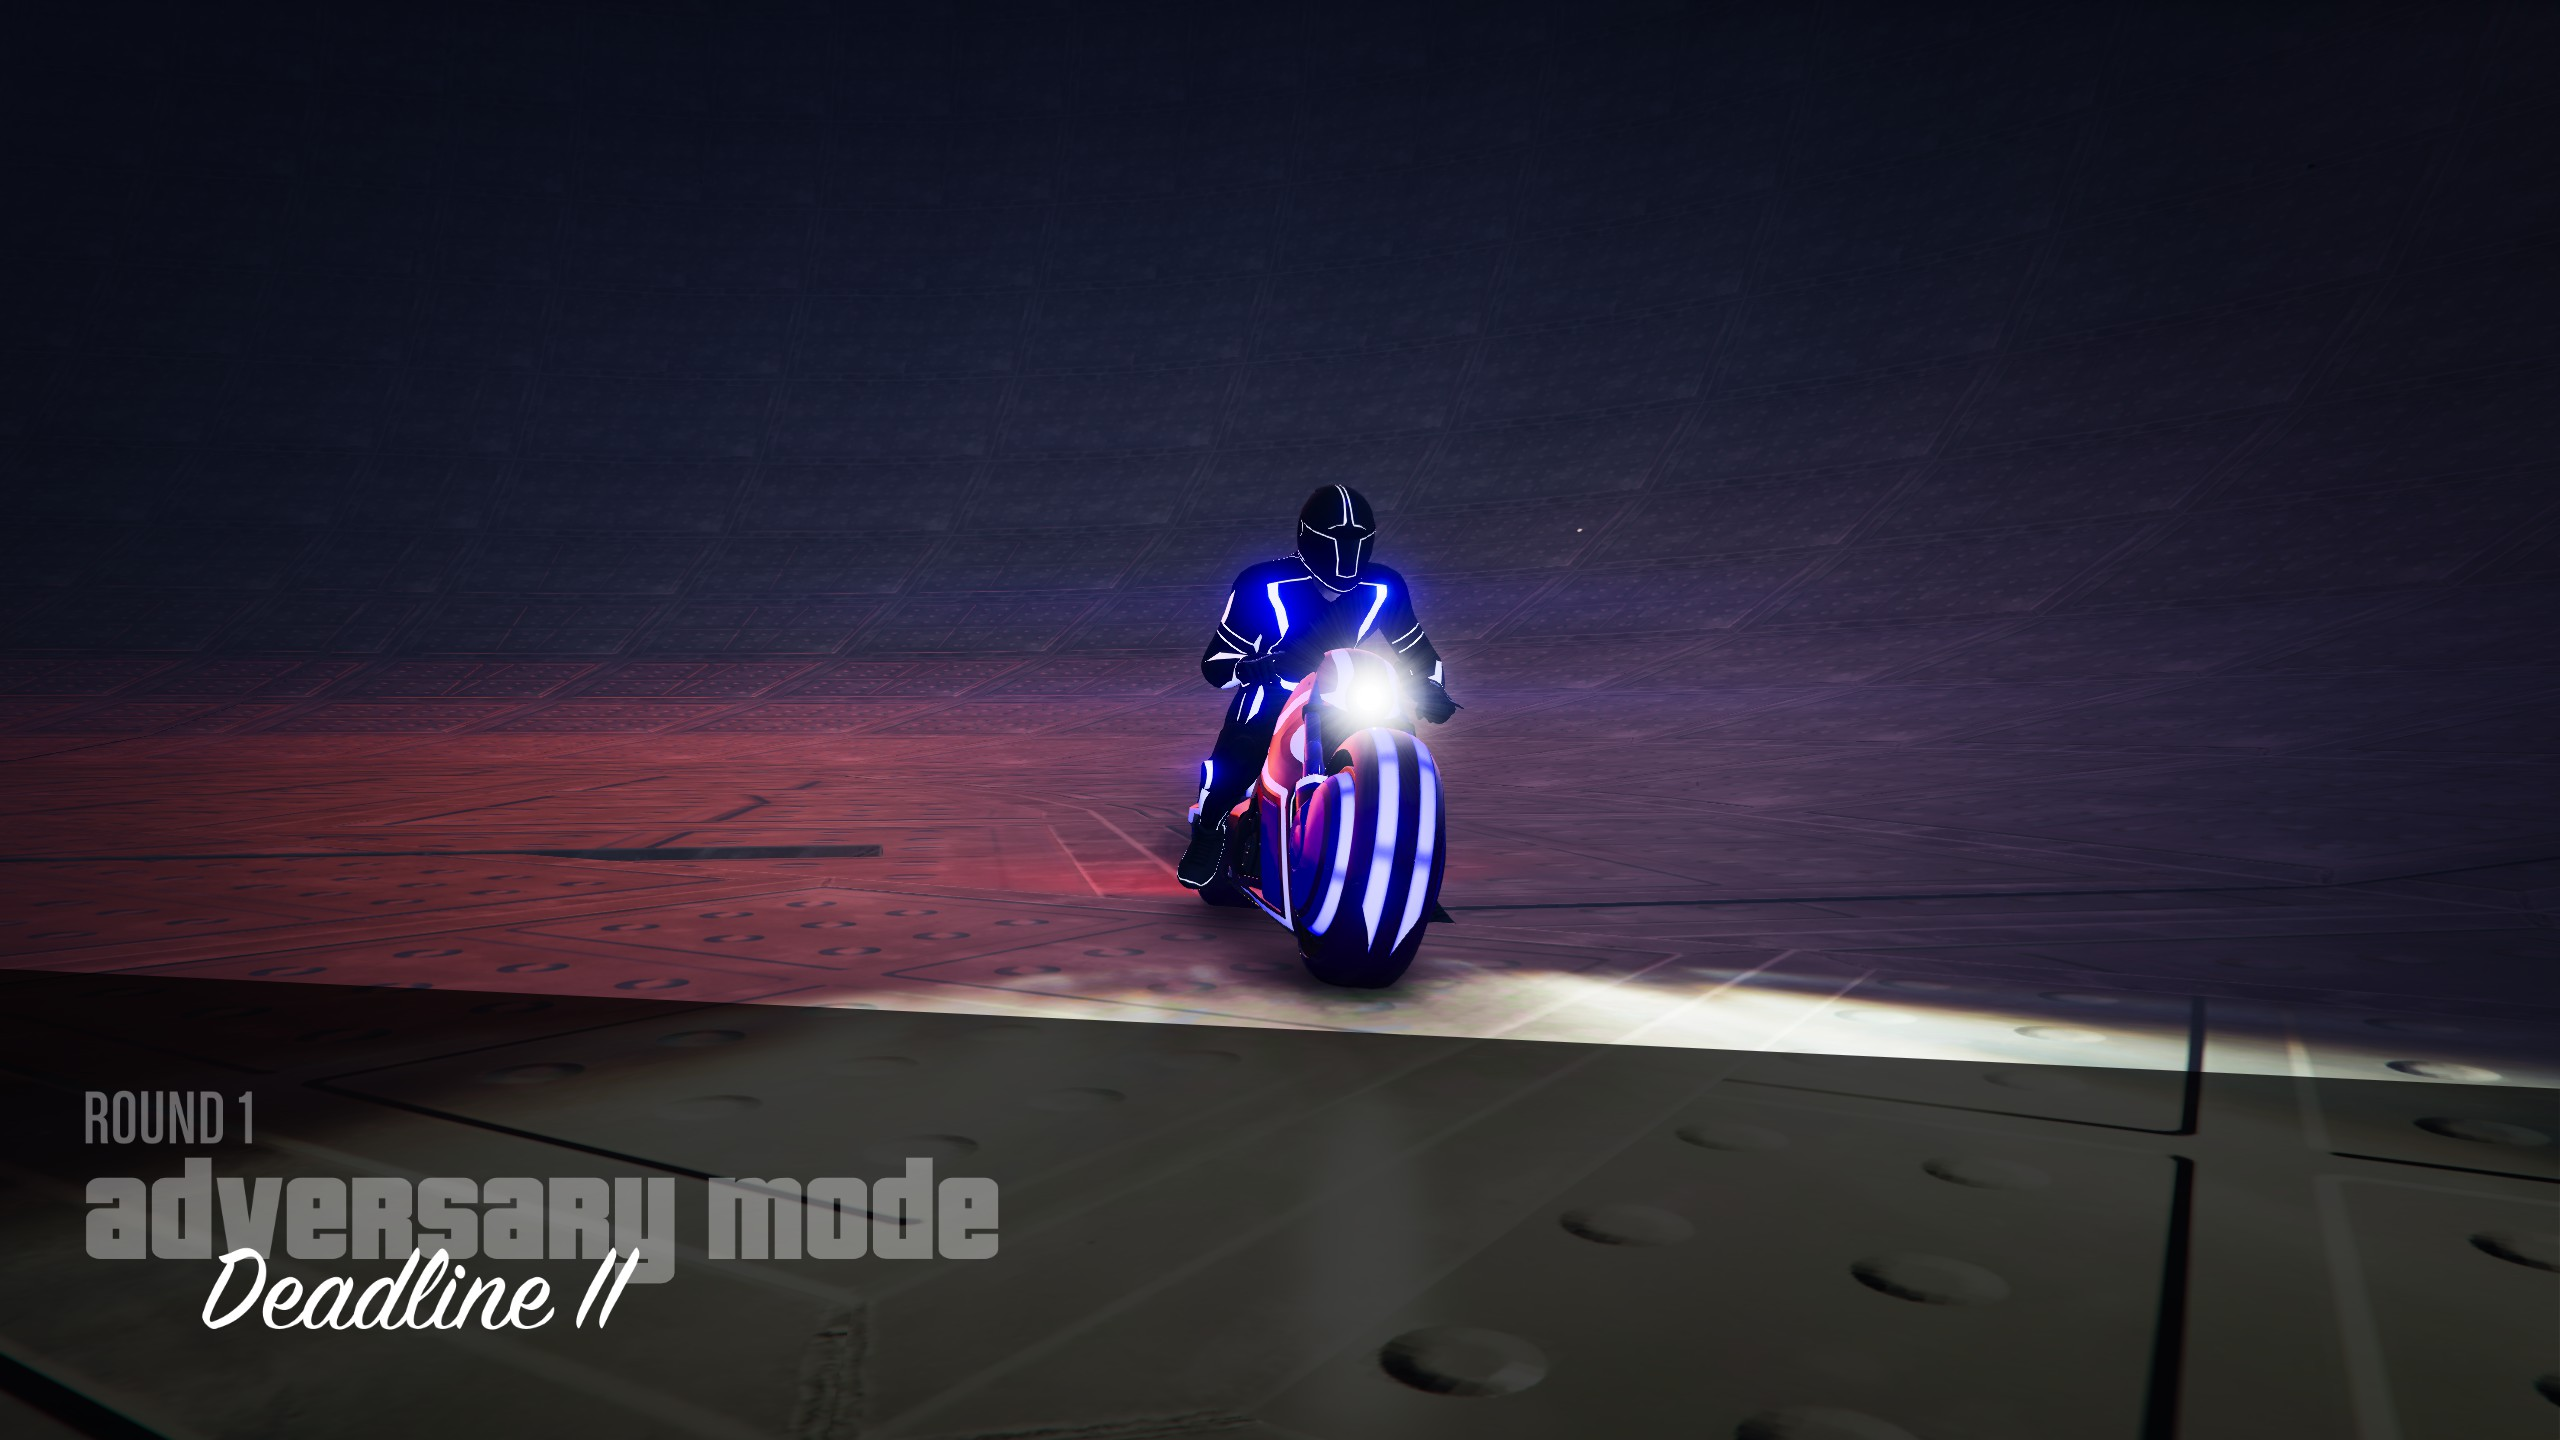 nagasaki-shotaro-gta-v-motorcycle-tron-grand-theft-auto-5